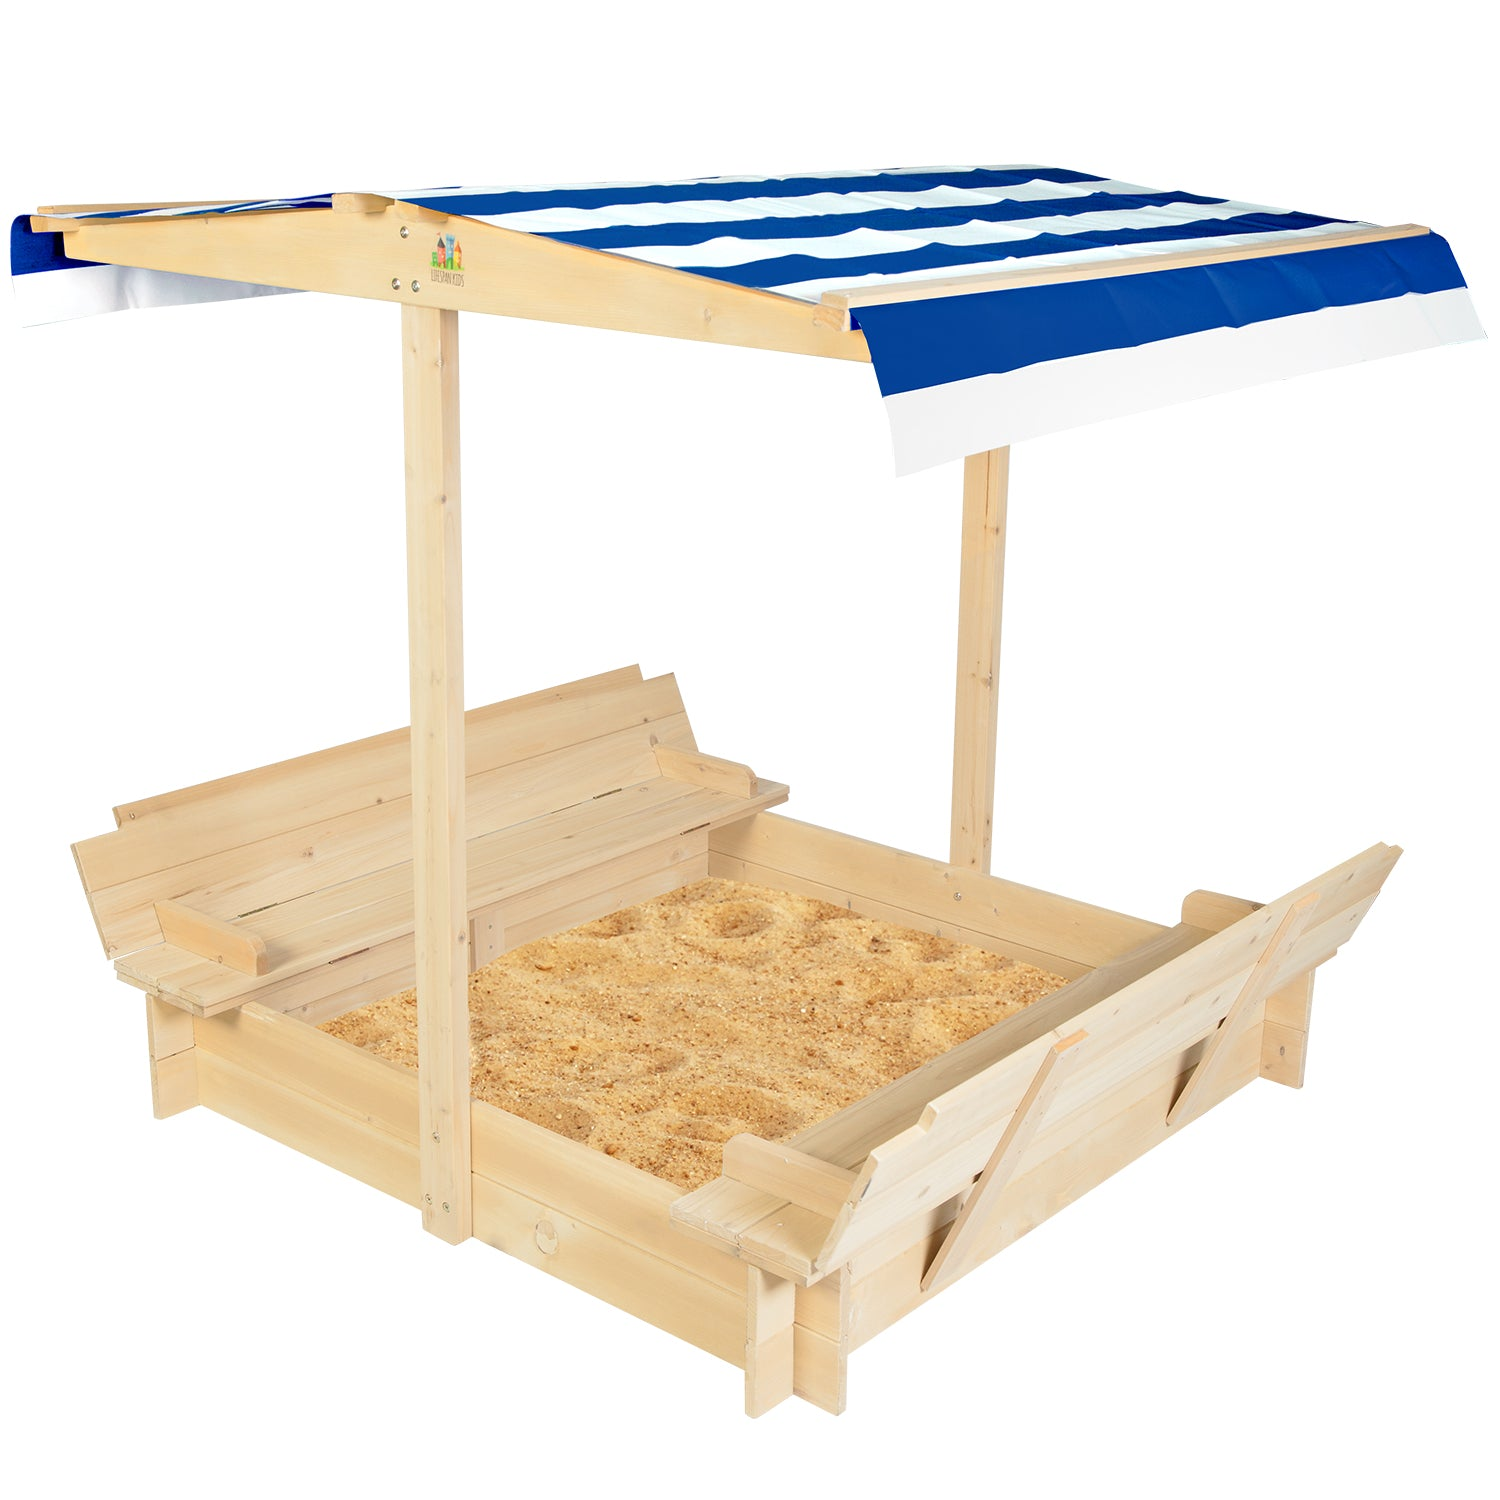 Lifespan Kids Skipper 2 Sandpit with Blue & White Canopy